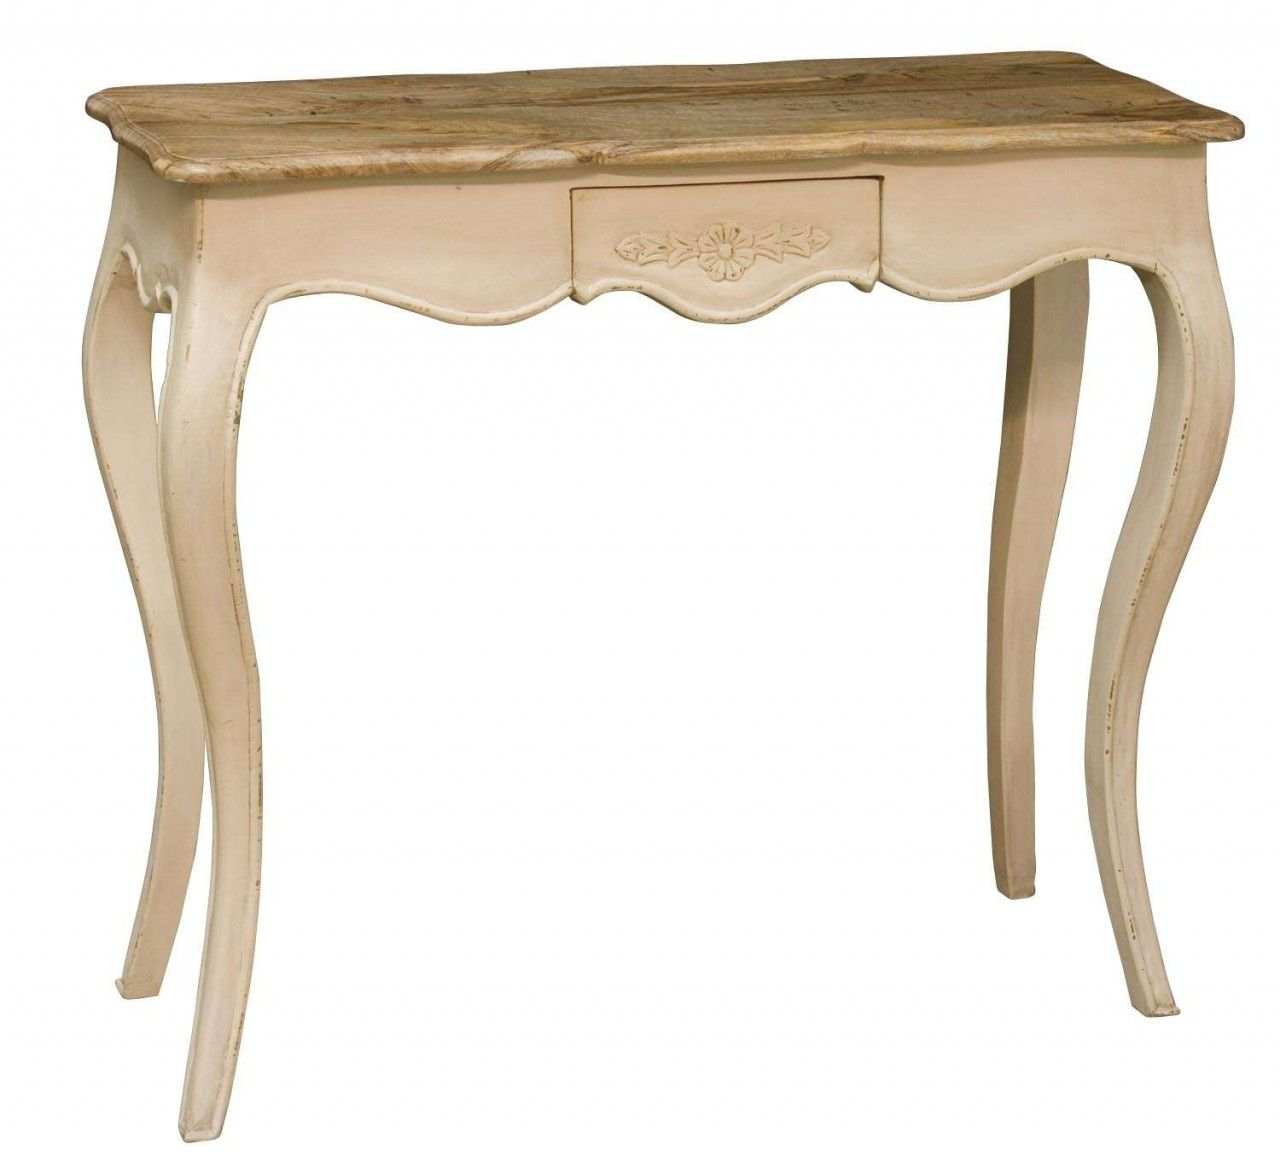 French Shabby Chic Cream Painted Furniture Now On Our Website Www